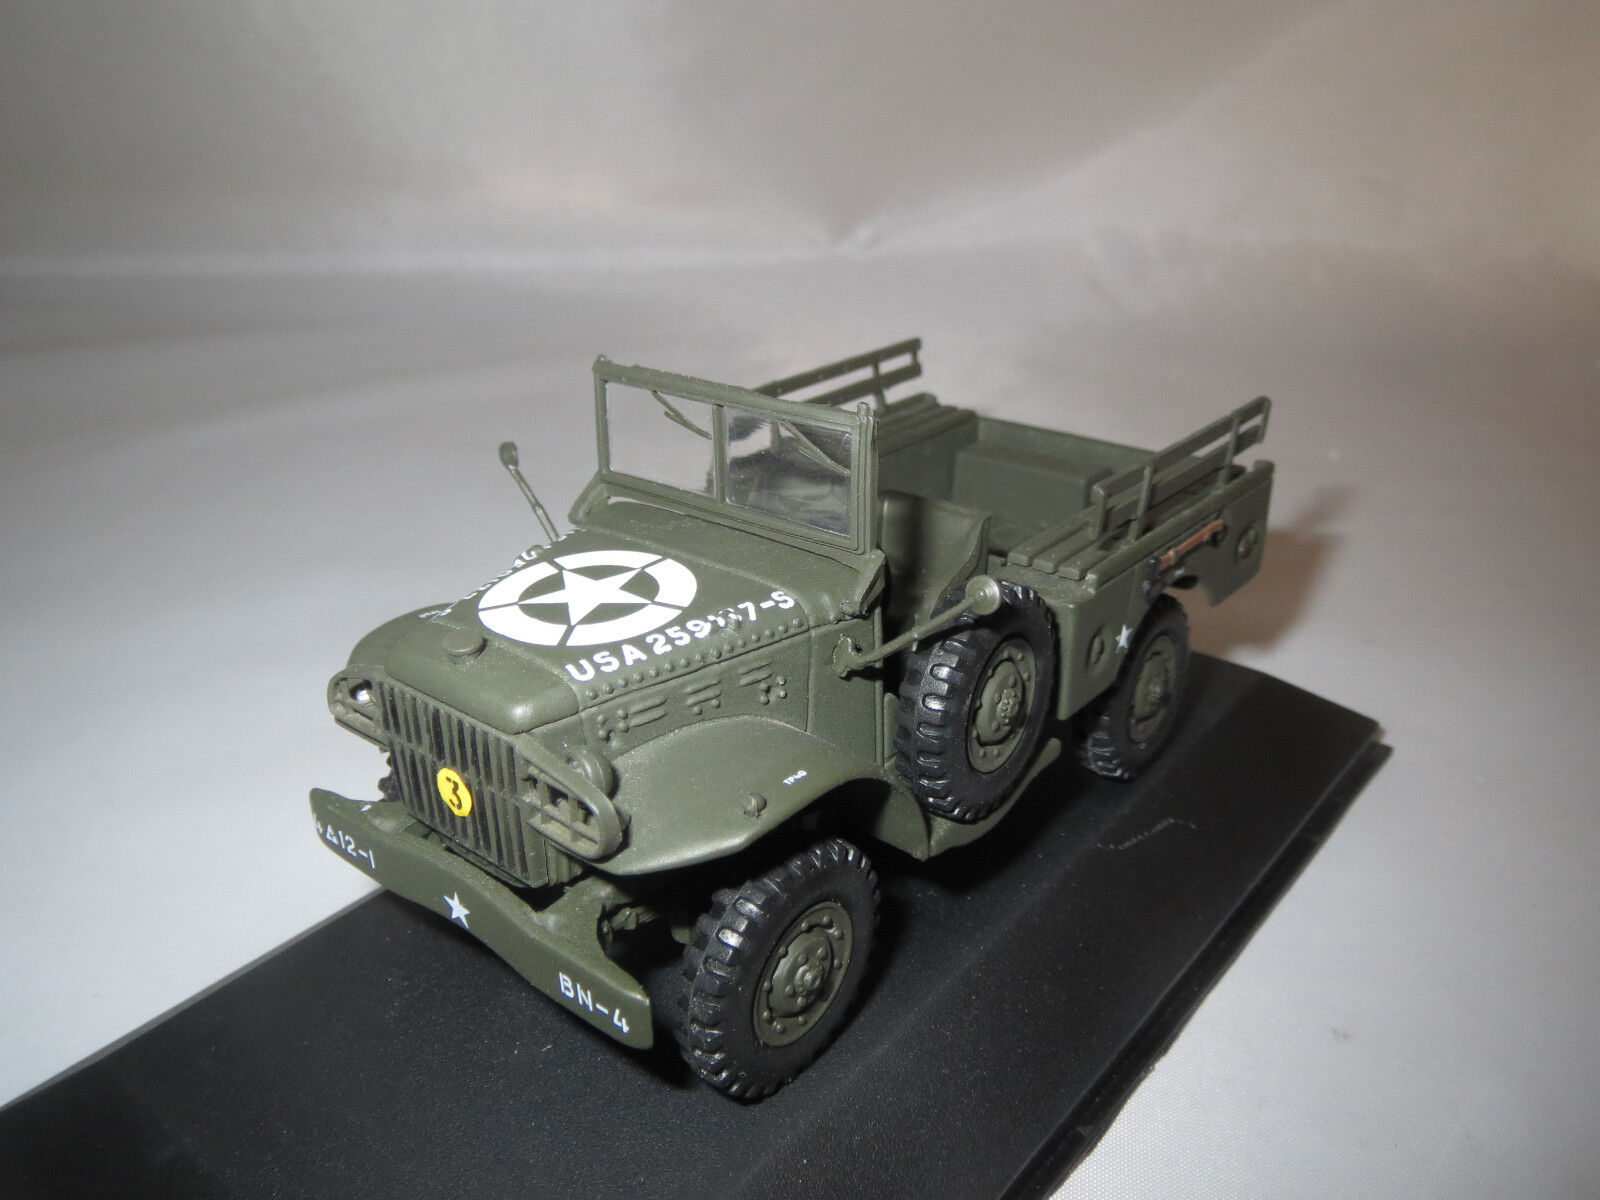 Victoria r046 DODGE wc51 weapons Carrier Open u.s. Army 1 43 OVP